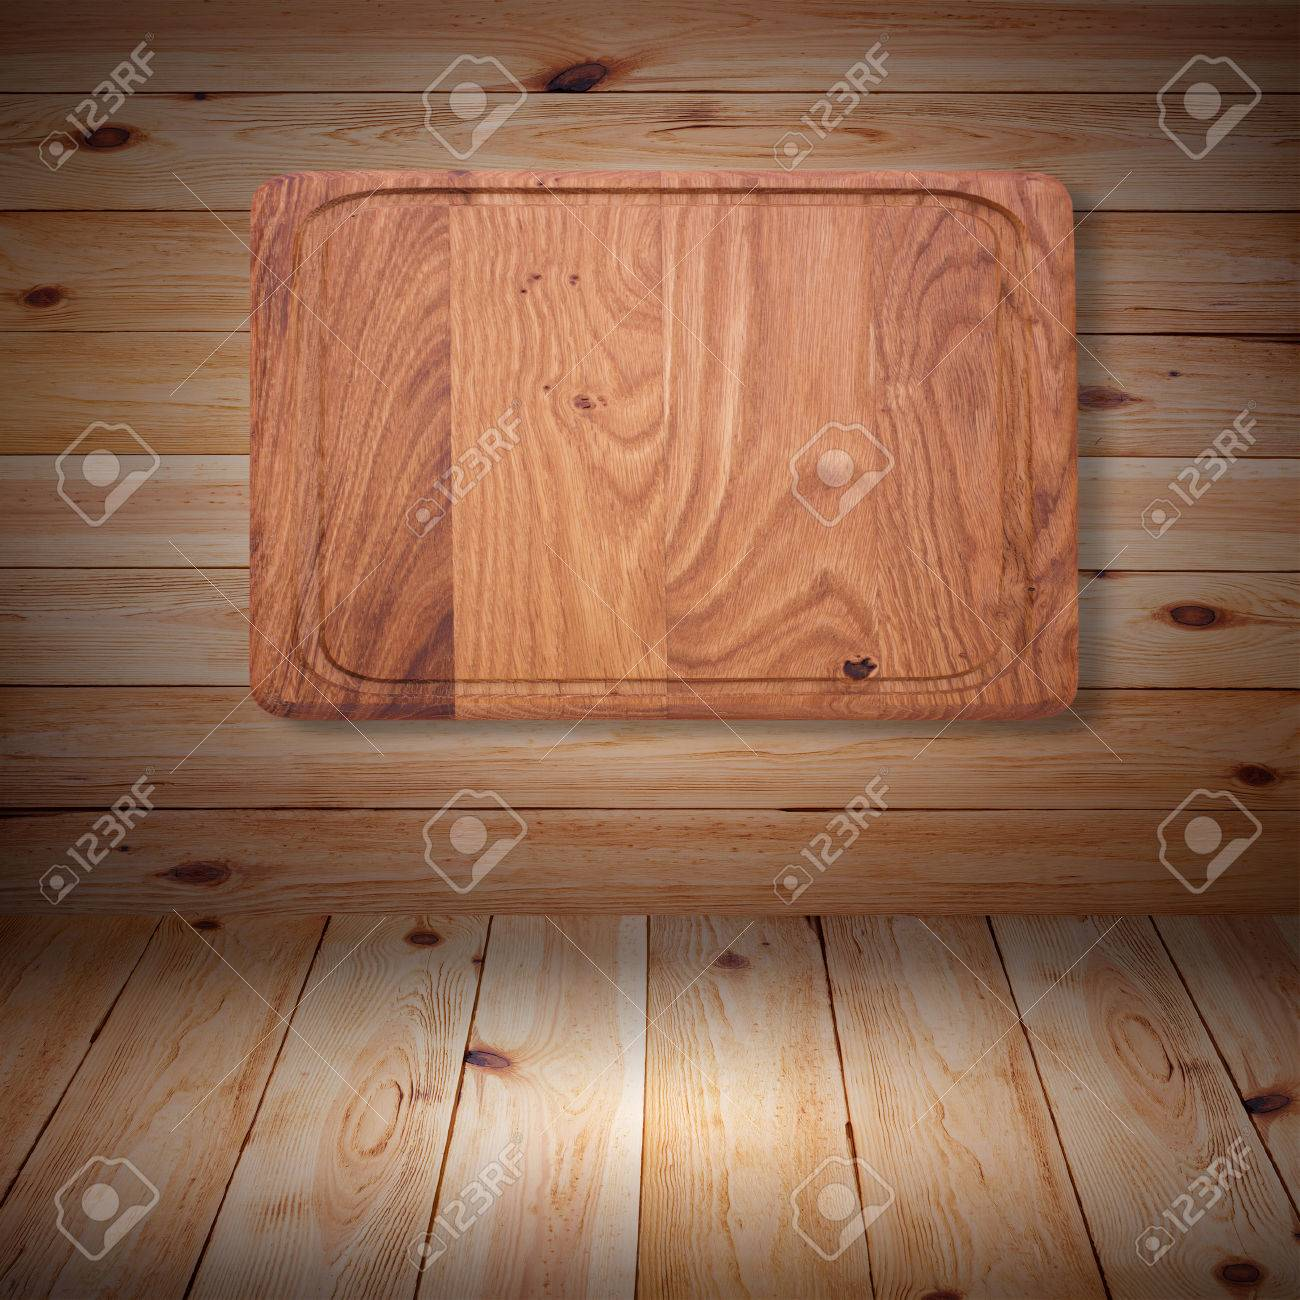 31084278 Wood texture Wooden kitchen cutting board close up Empty wooden table on white background for produc Stock Photo